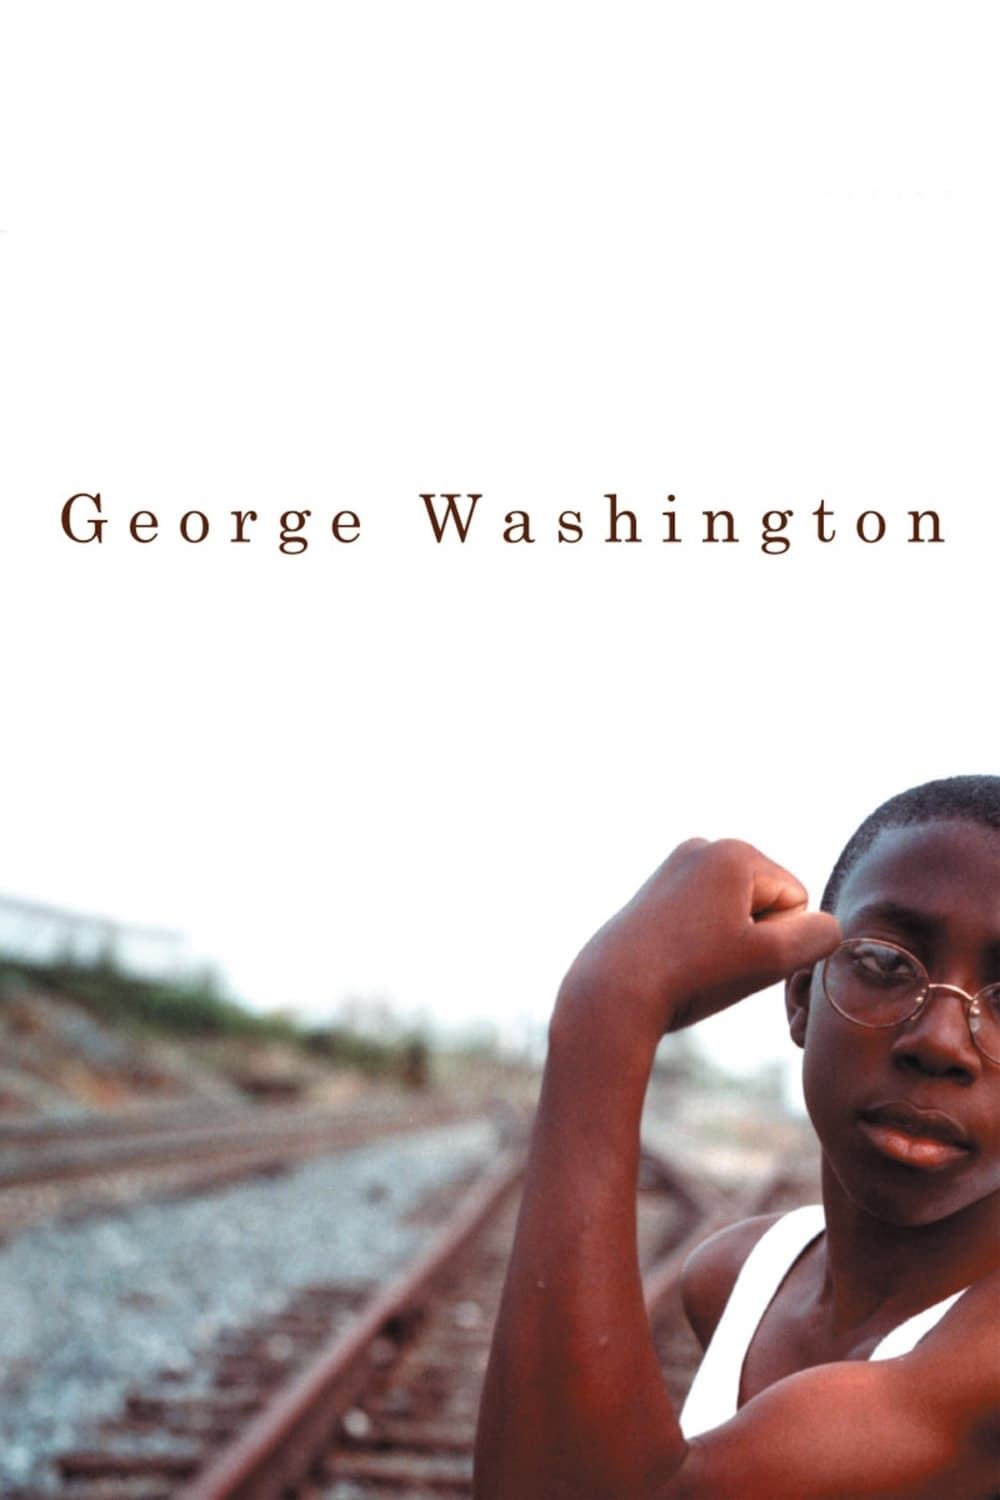 Poster for GEORGE WASHINGTON